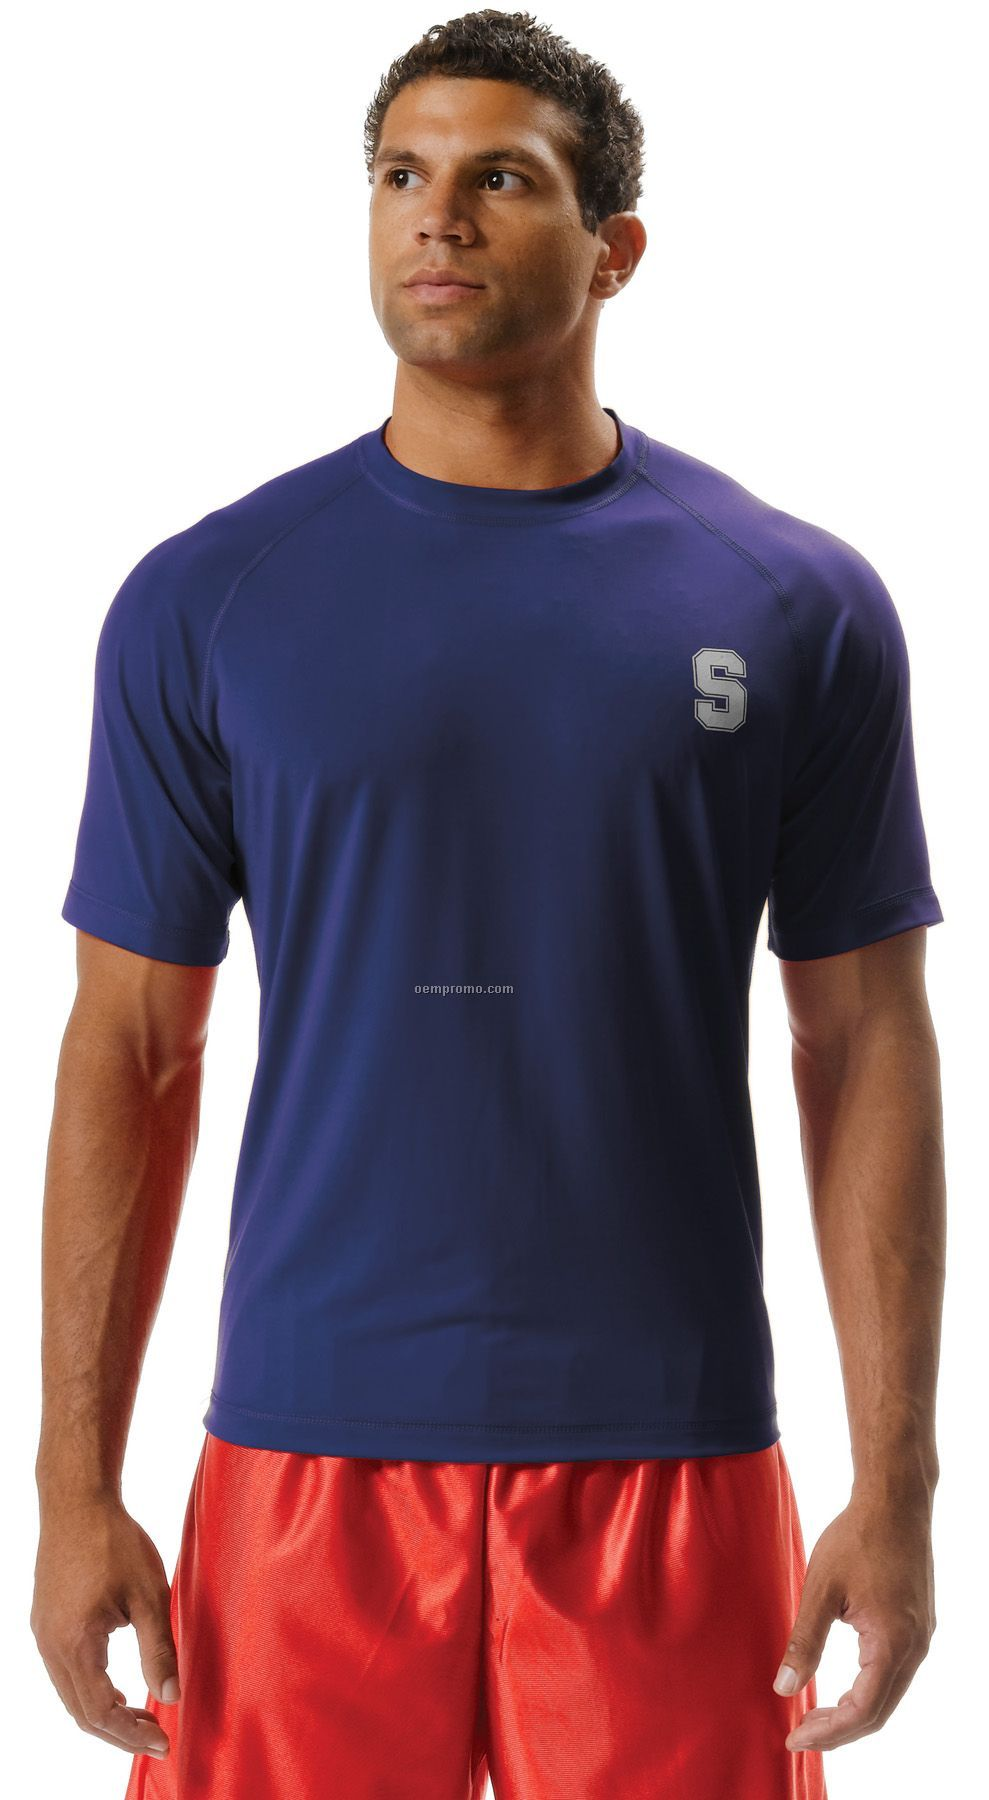 N3213 Adult 2-way Stretch Short Sleeve Performance Tee